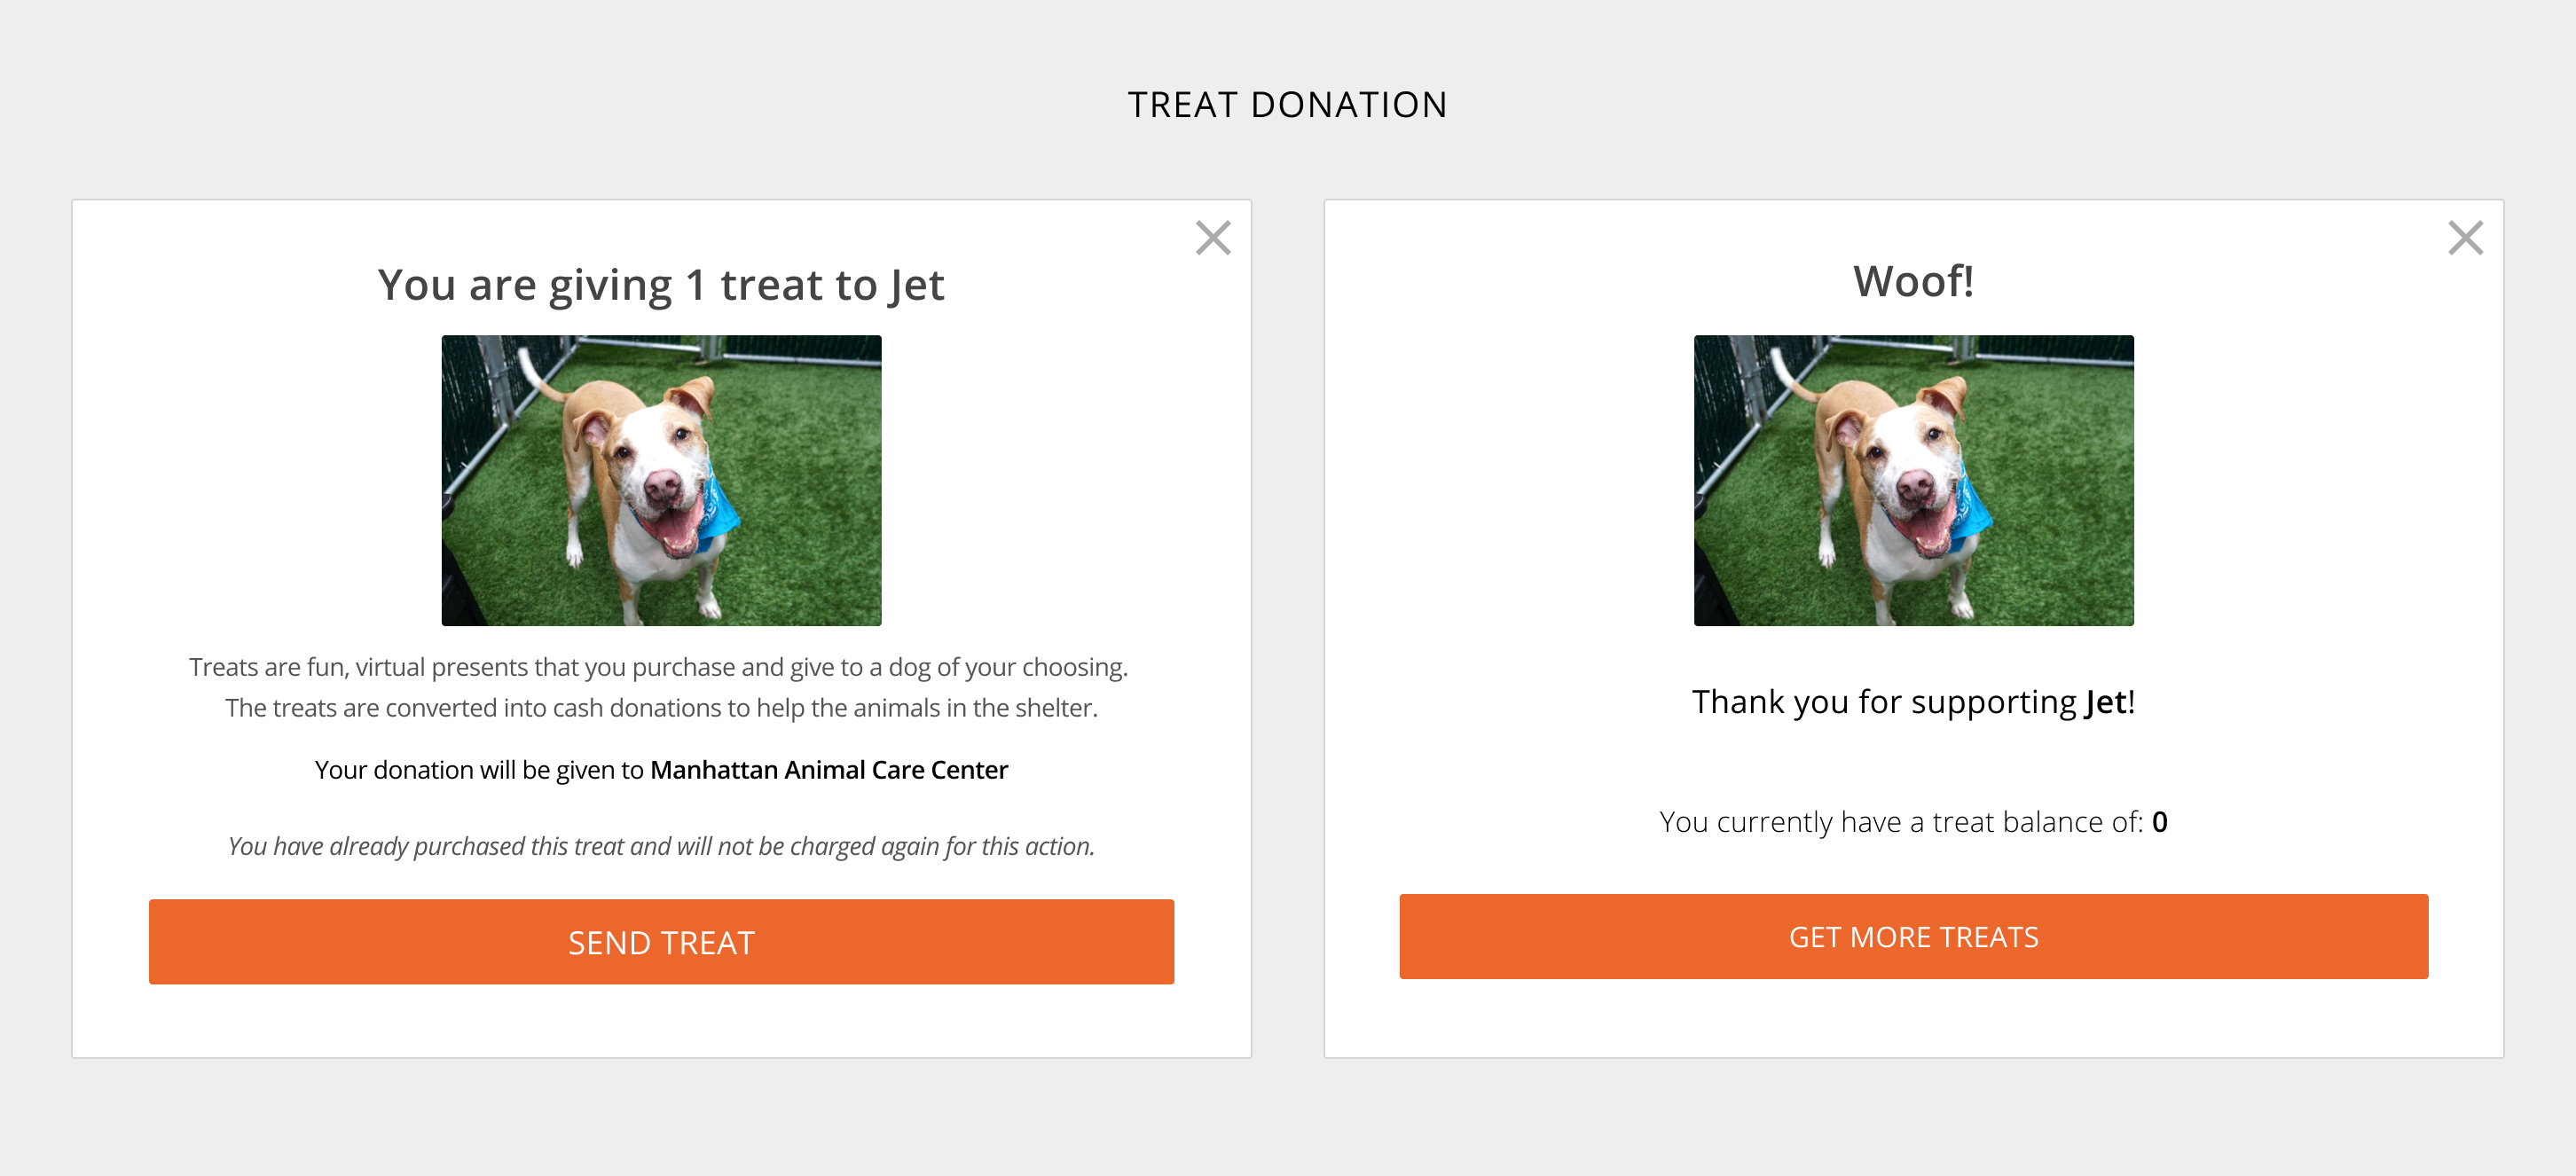 Treat Donation-smaller text